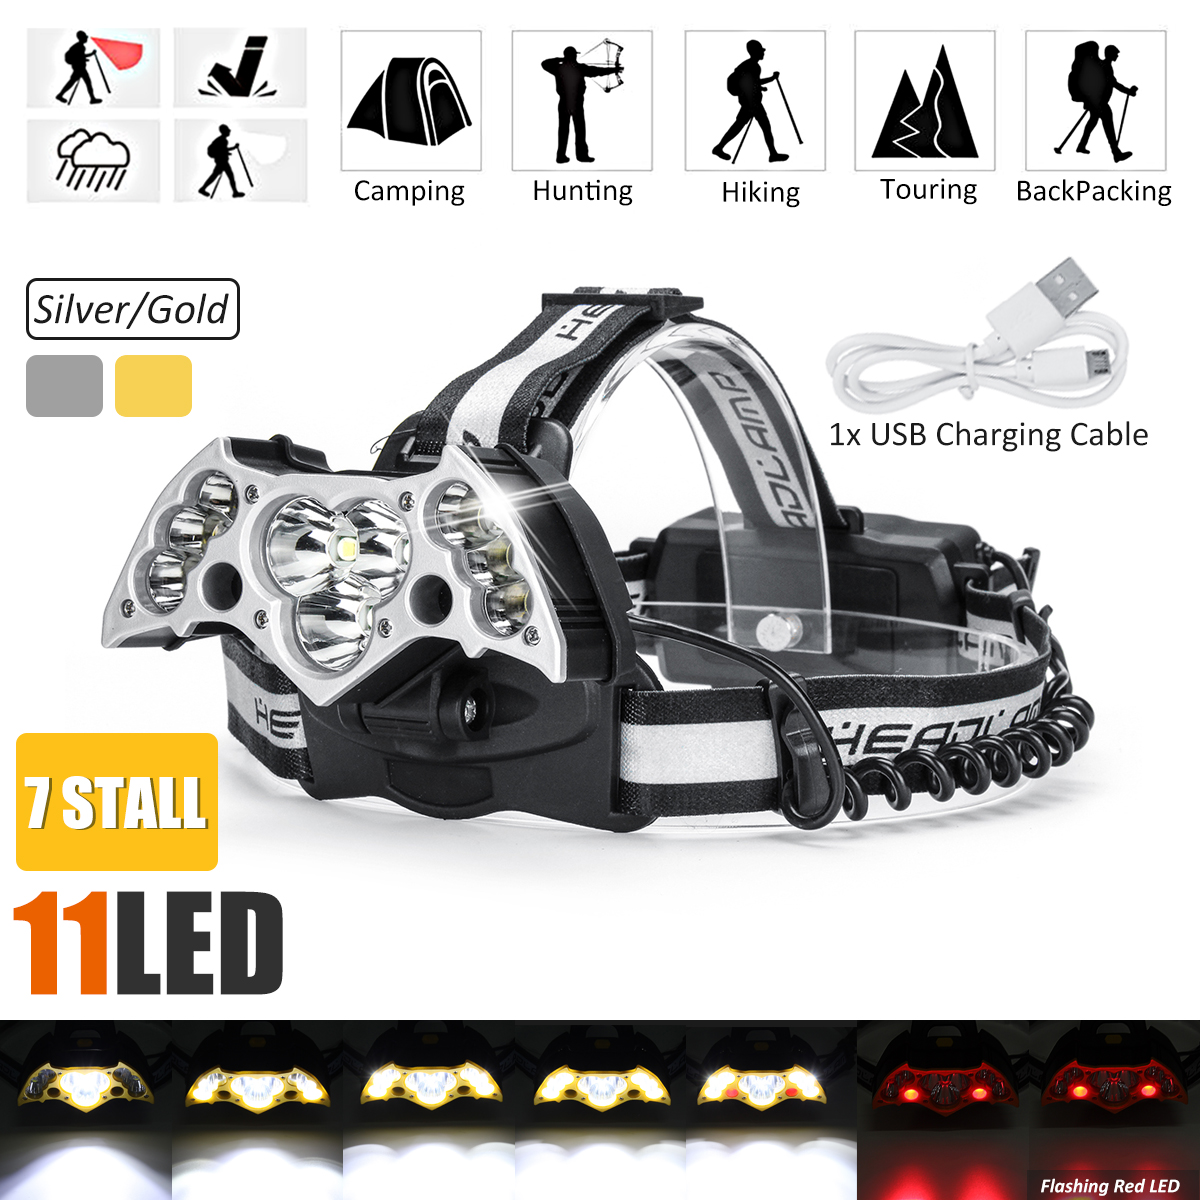 Smxui 7/9/11 LED Headlamp 50000LM LED T6 Headlight Head Flashlight Torch Forehead Rechargeable COB Head Lamp Fishing Headlight 30w led cob usb rechargeable 18650 cob led headlamp headlight fishing torch flashlight